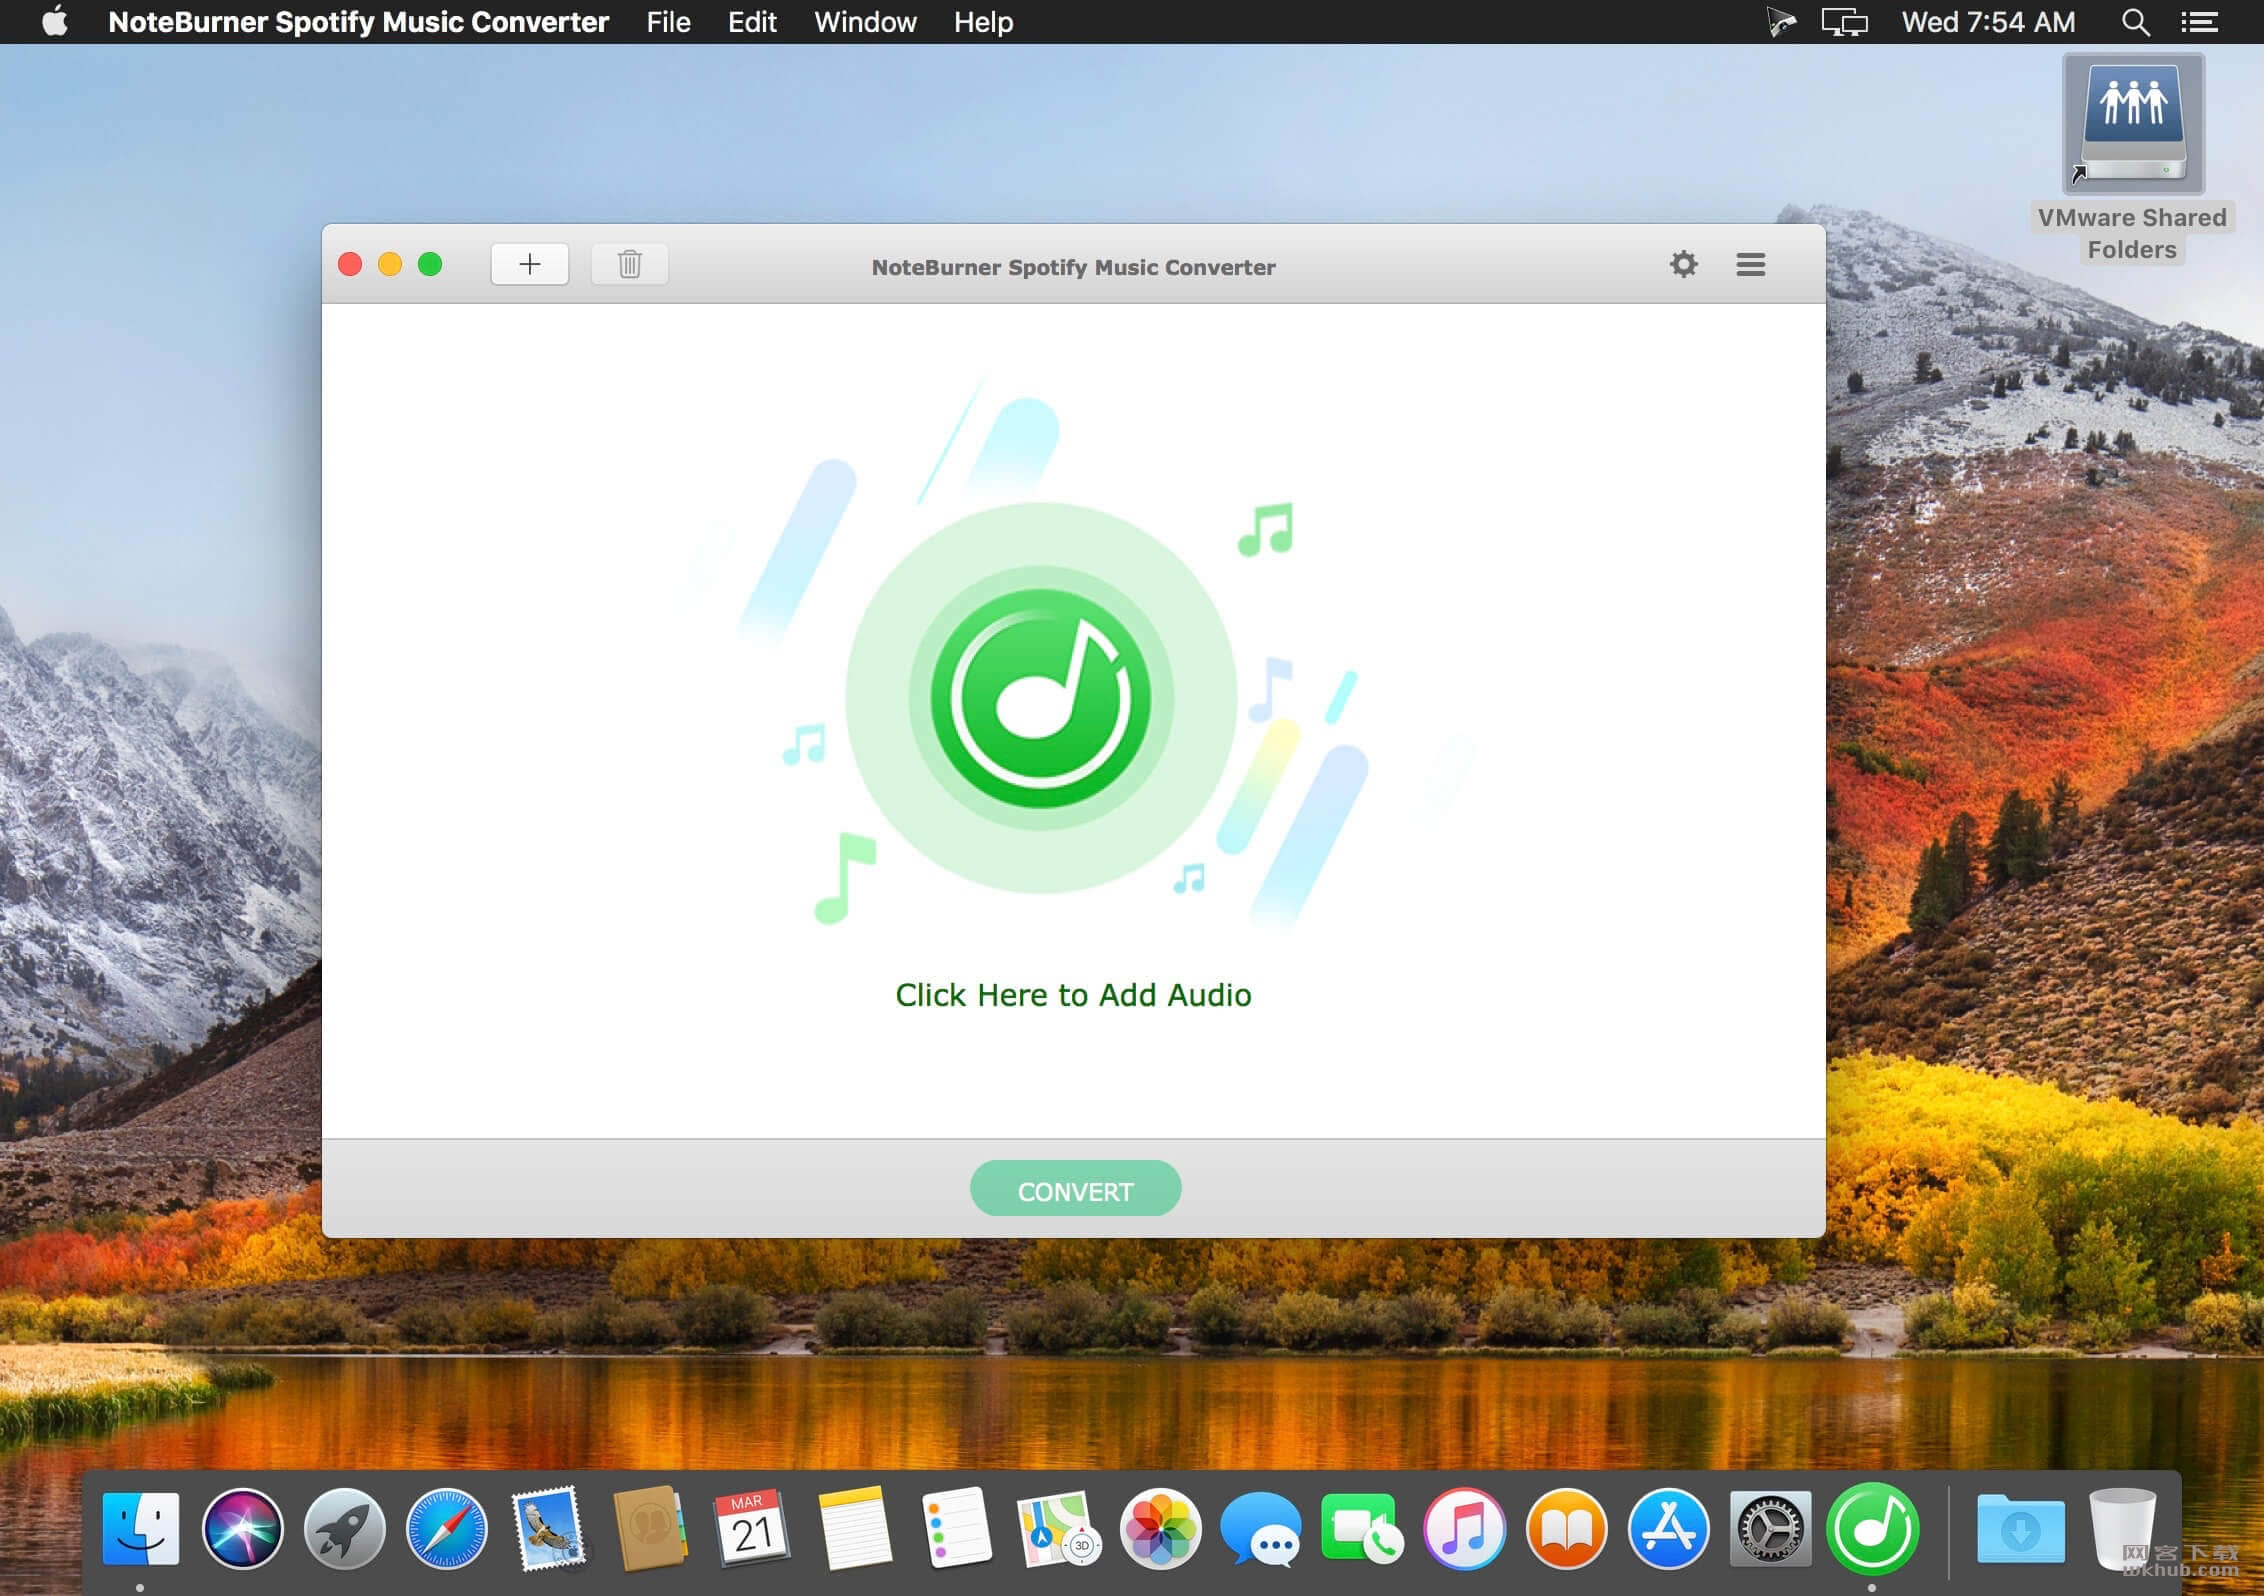 NoteBurner Spotify Music Converter 1.1.6 简单易用的Spotify音频转换器